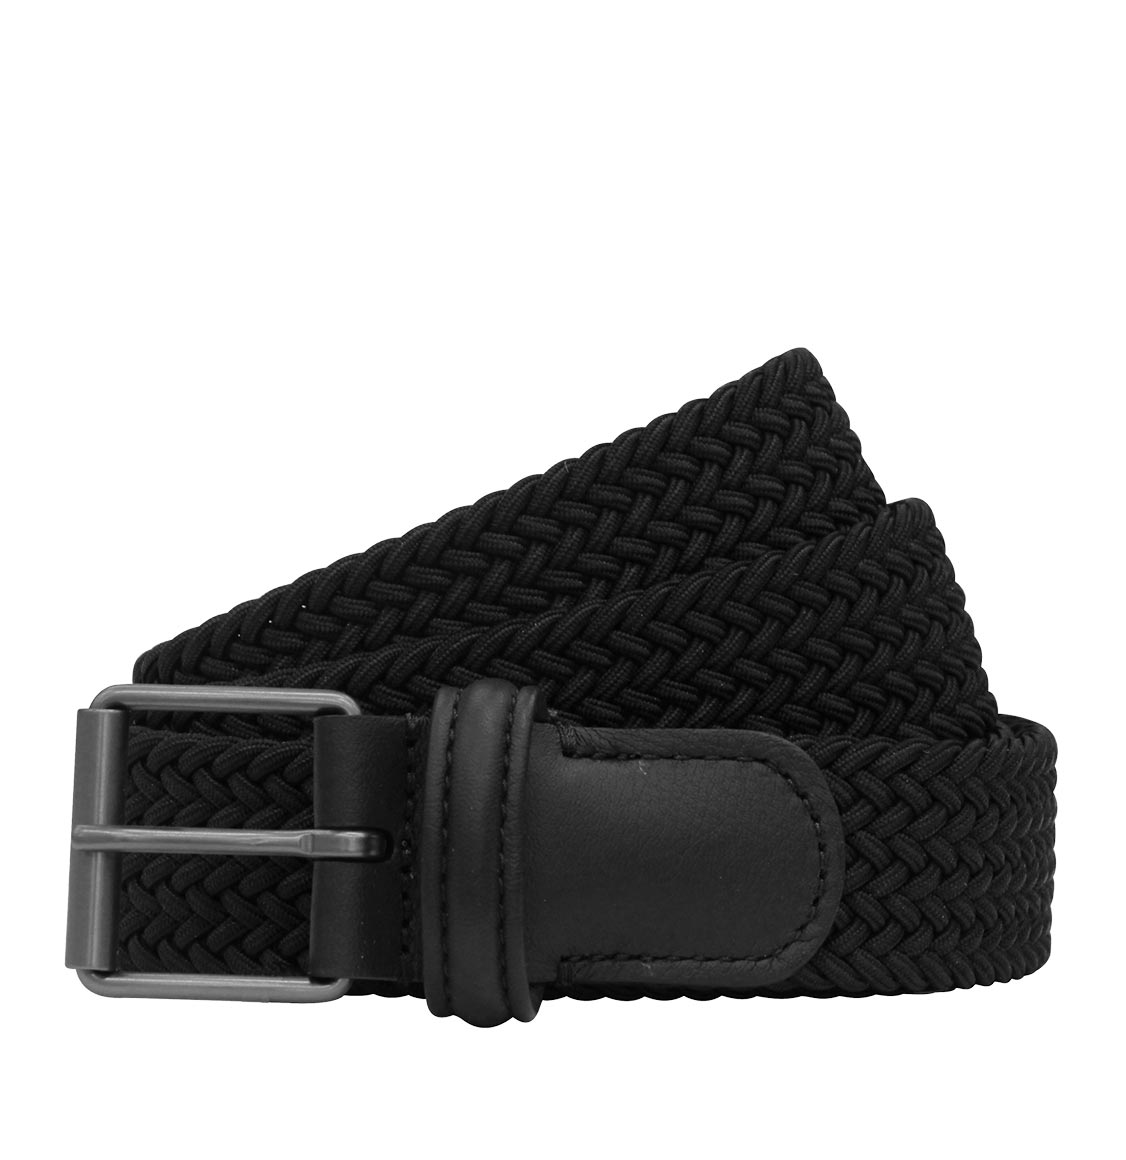 Anderson's Leather-Trimmed Woven Belt Black